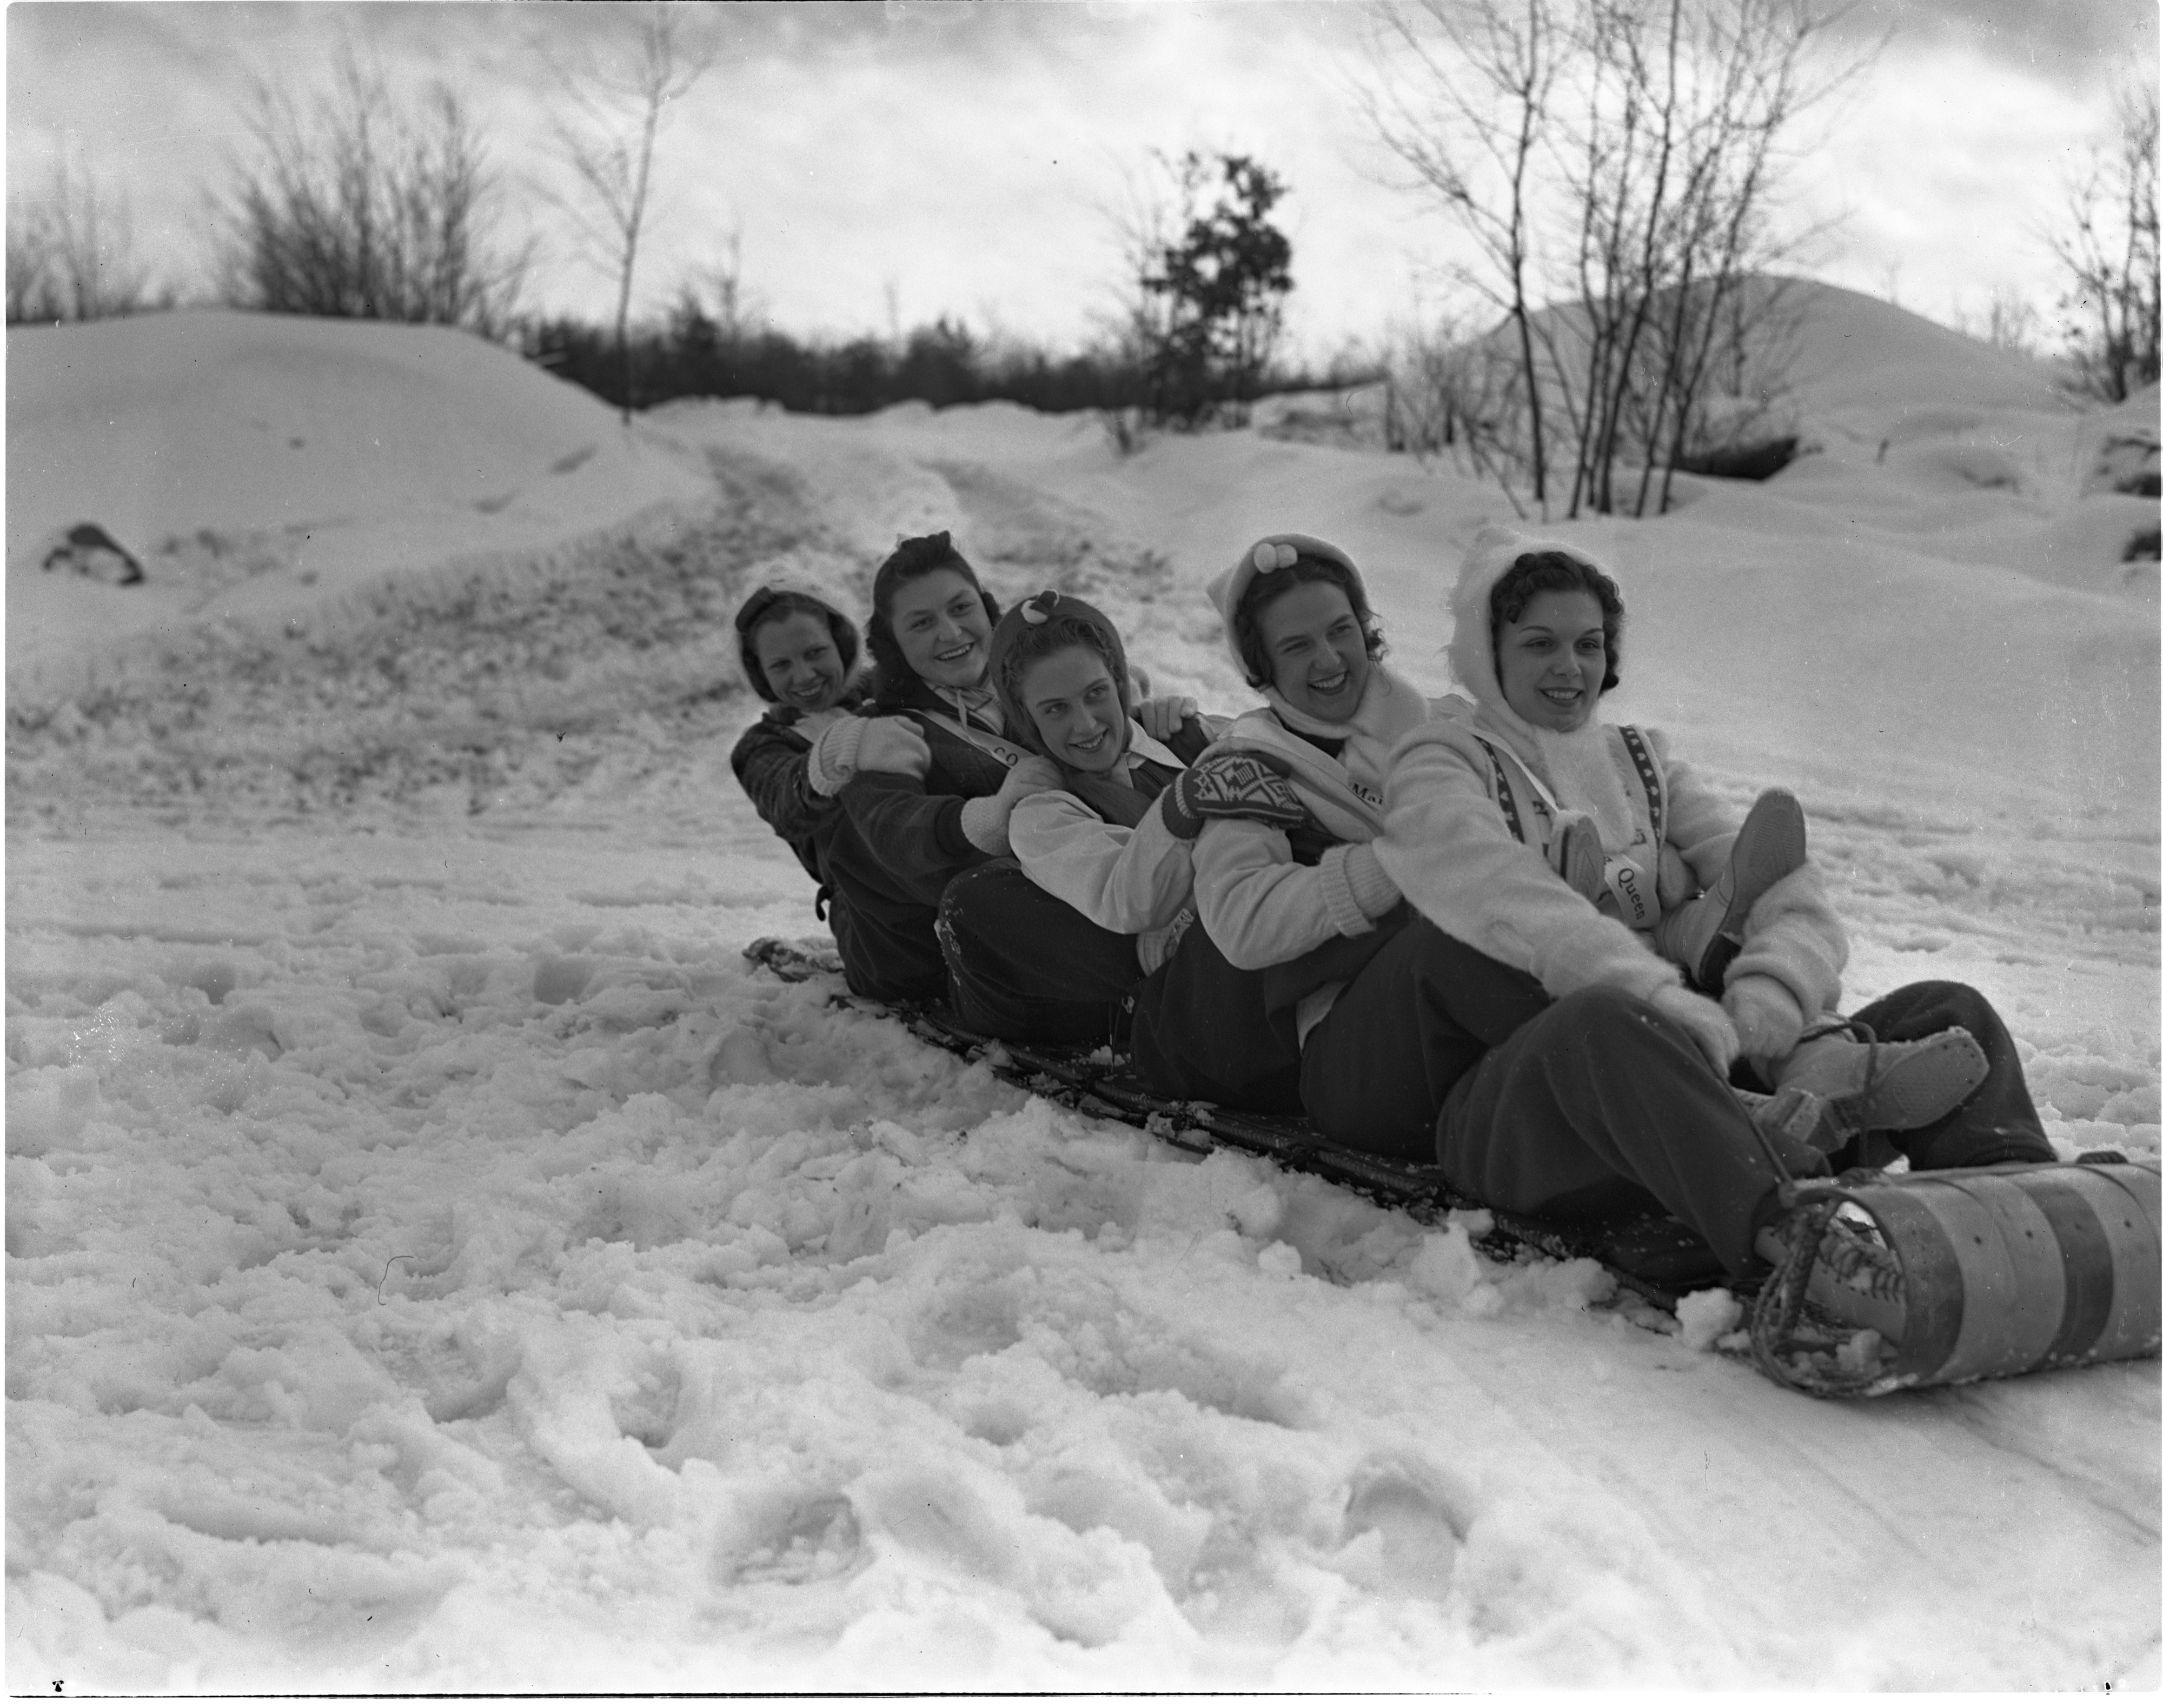 Grayling Snow Queen Pauline Merrill And Her Court On A Toboggan, January 1940 image